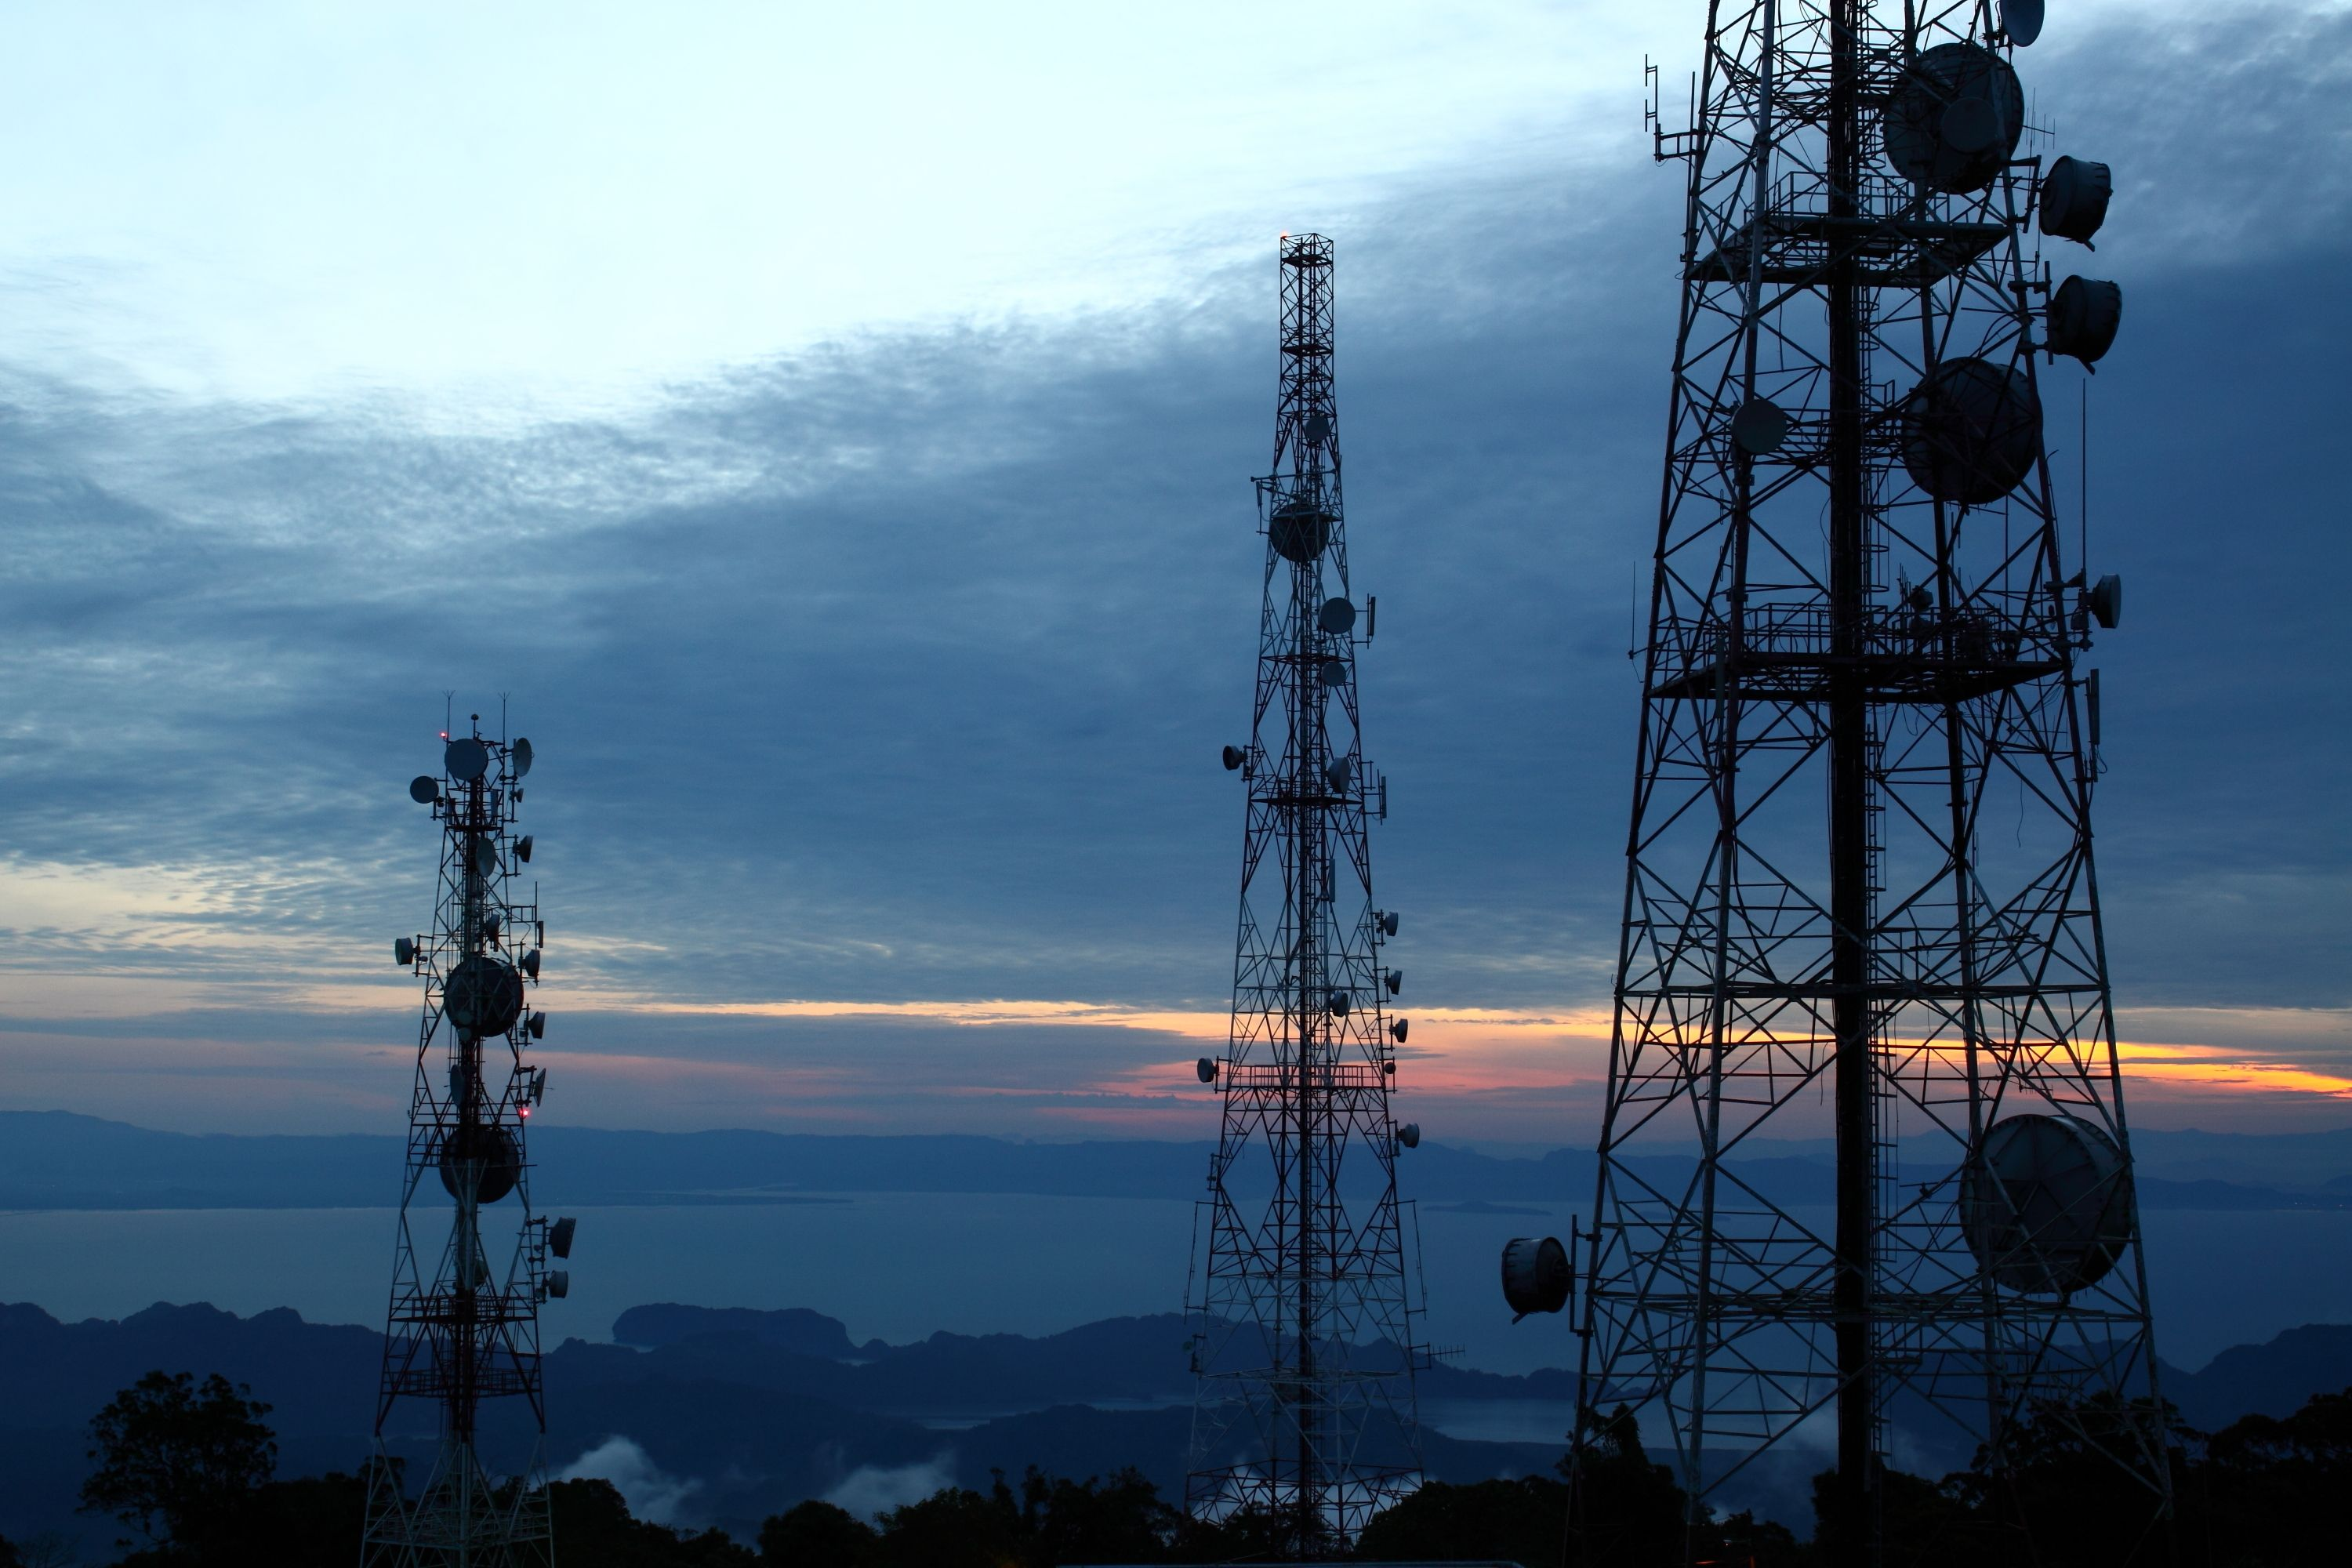 Cdma Vs Gsm Mobile Tower Communication Tower Tower